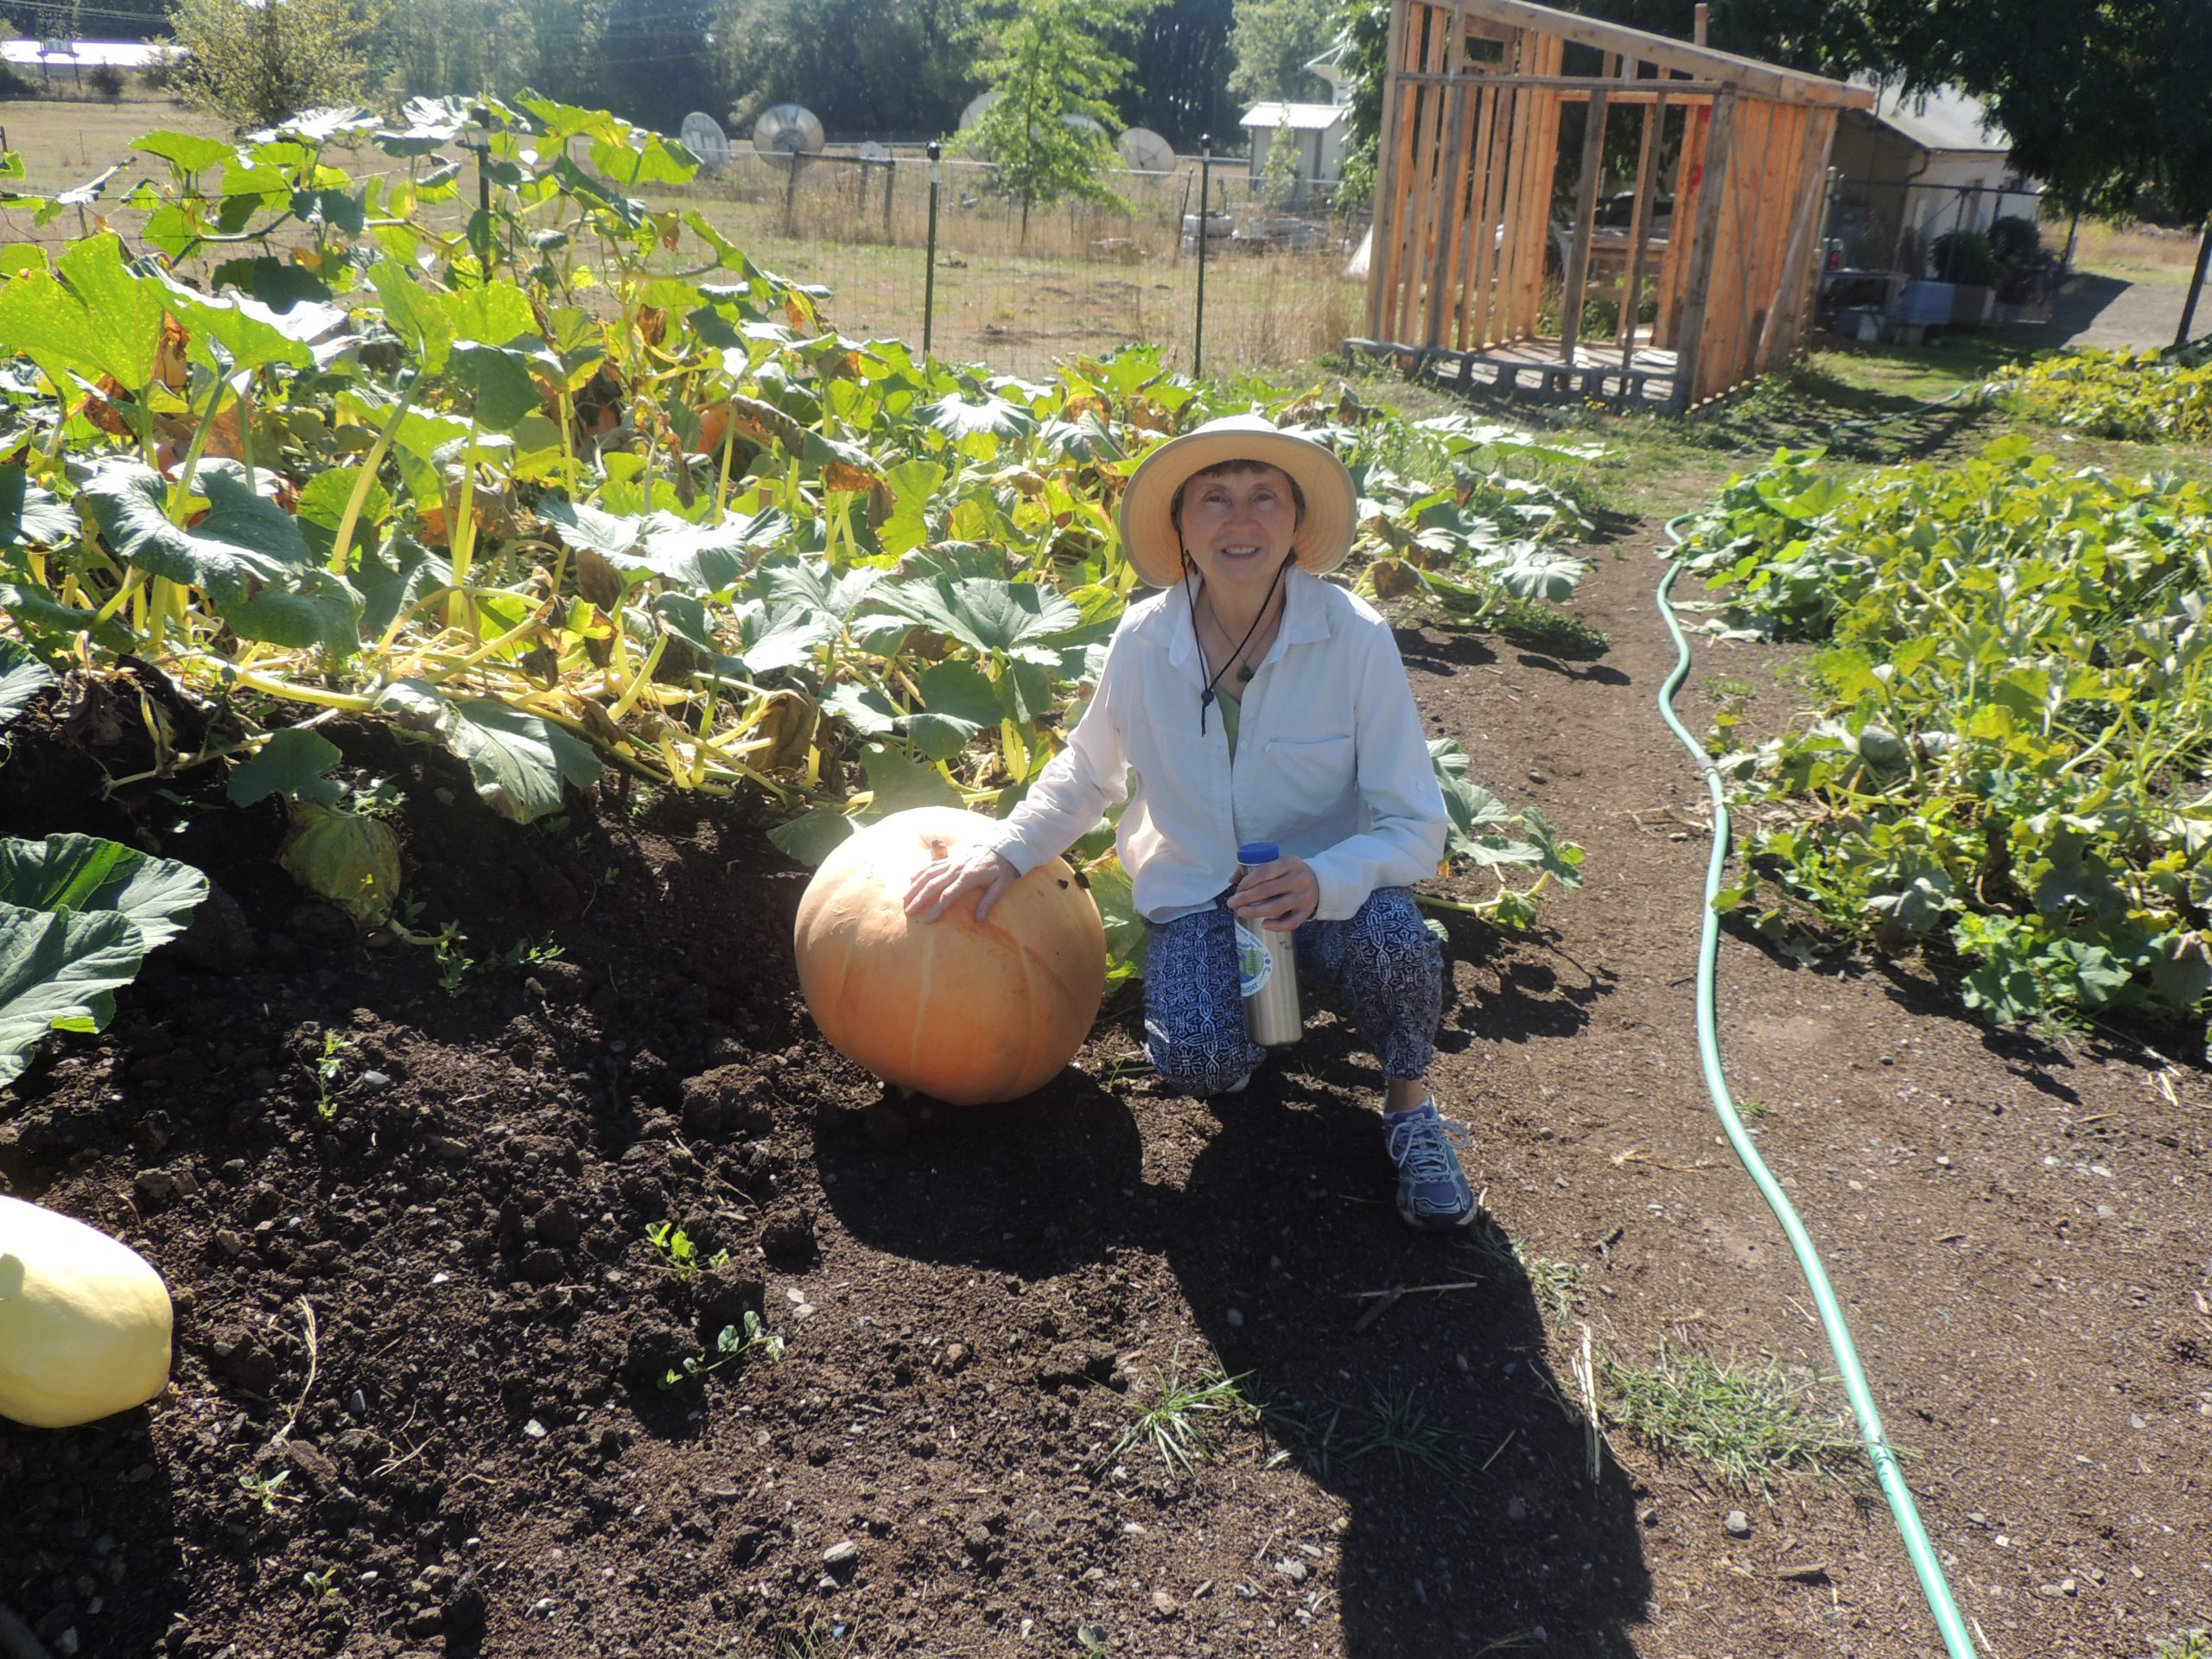 Teresa Matteson with a squash at Oak Creek Center for Urban Horticulture © H. Keirstead. Keirstead